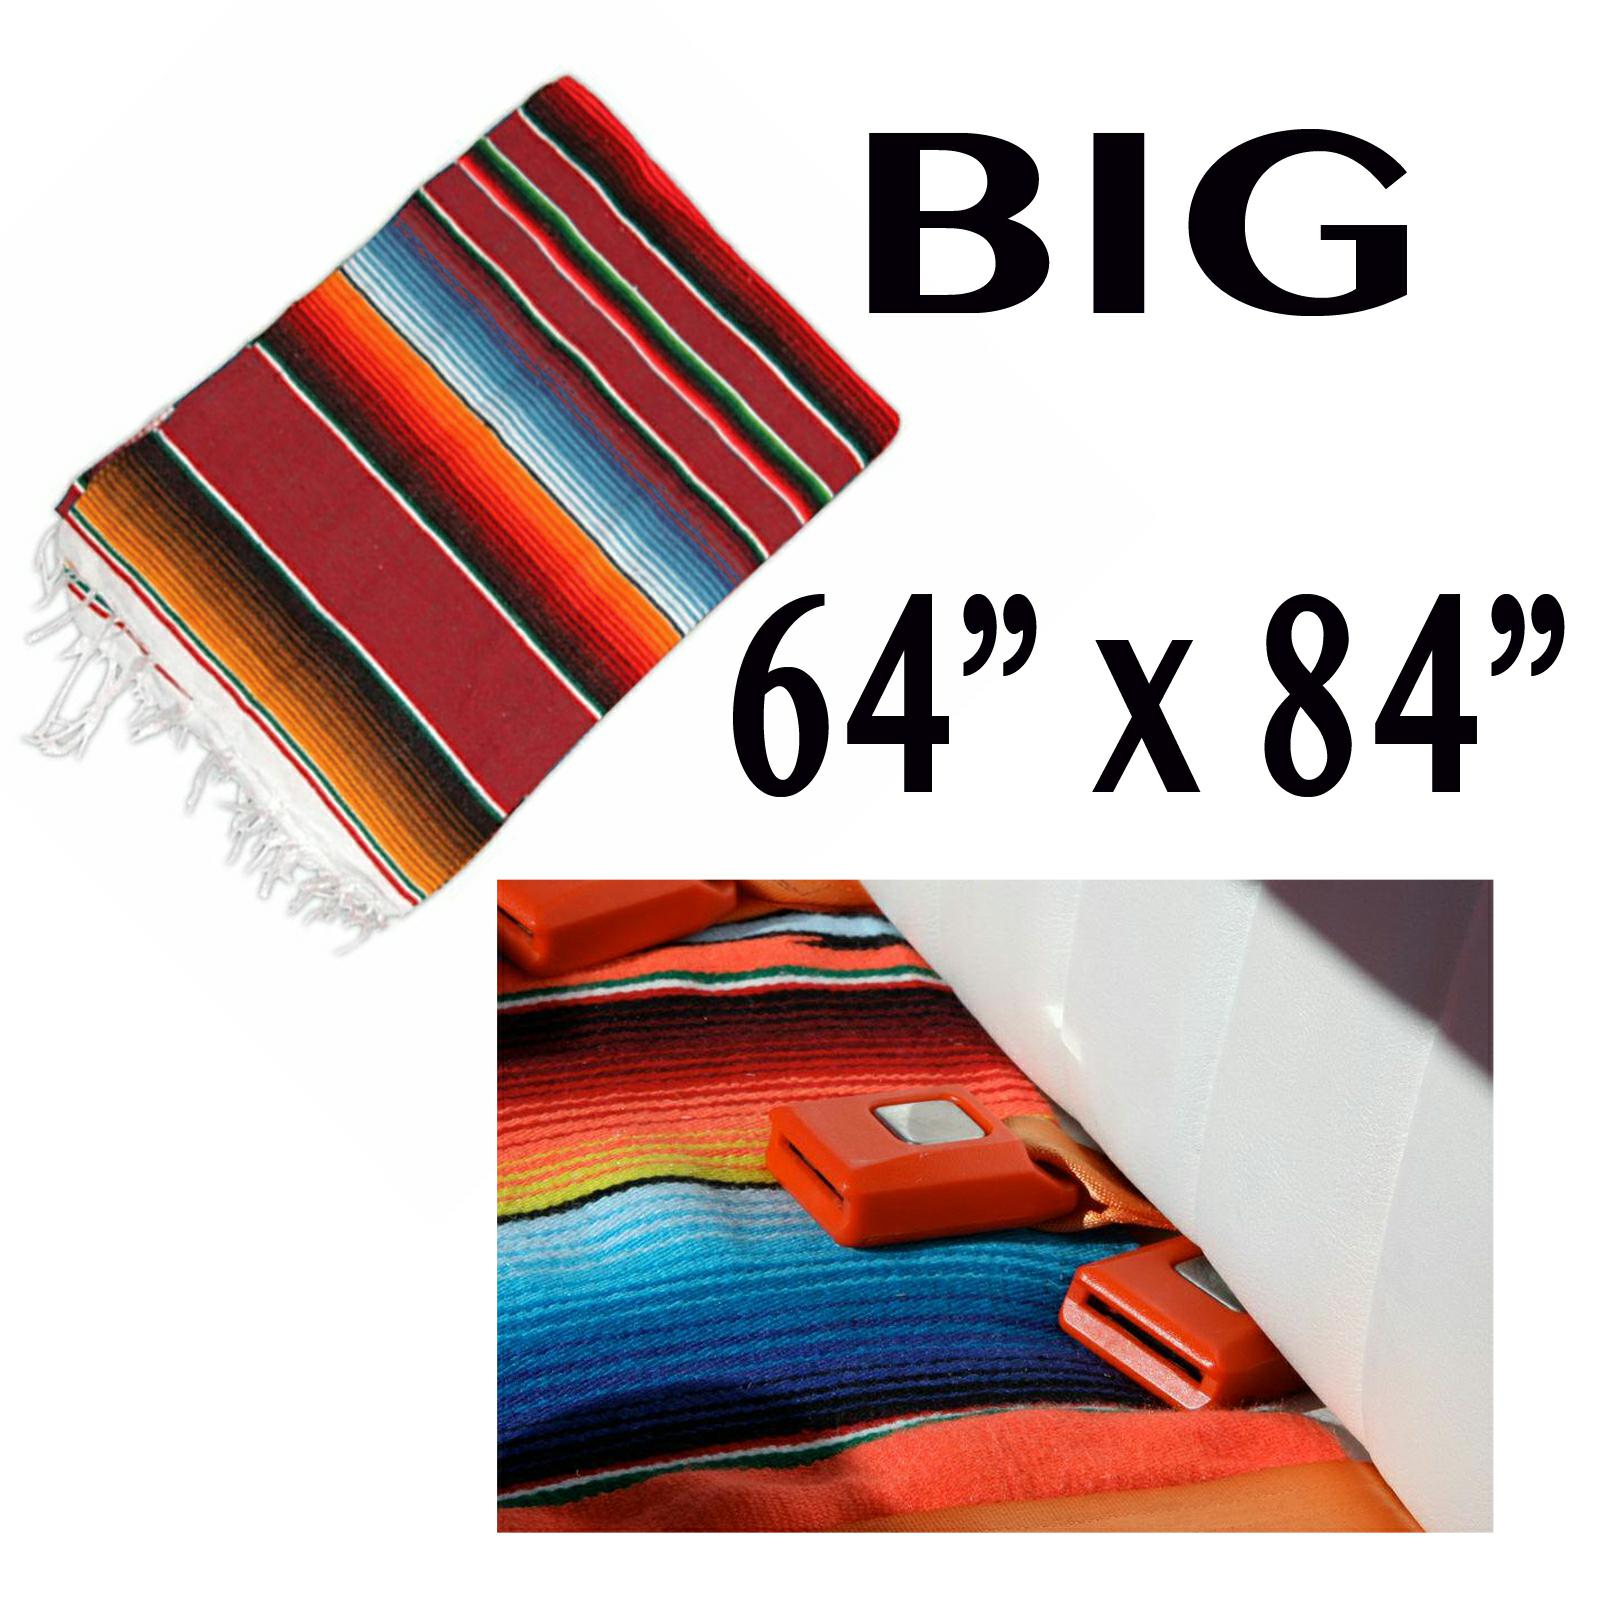 mexican blanket hot rat rod interior seat cover bench upholstery ebay. Black Bedroom Furniture Sets. Home Design Ideas